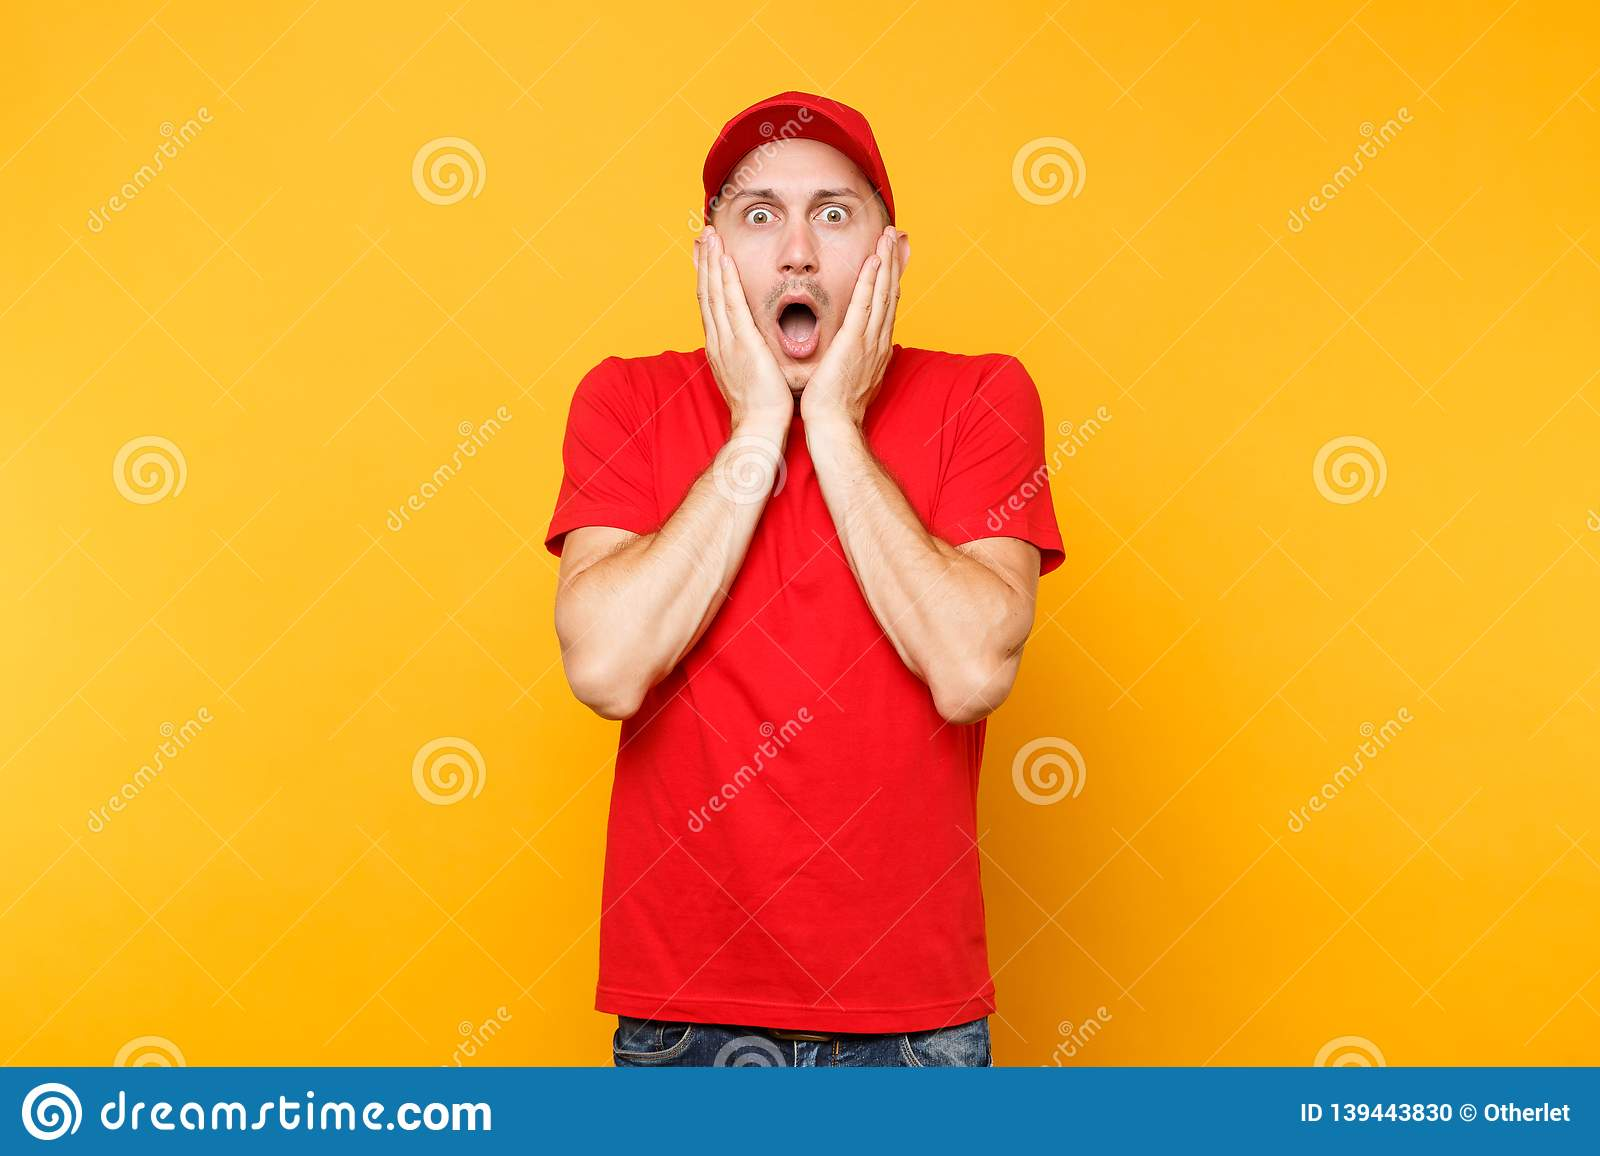 Delivery man in red uniform isolated on yellow orange background. Professional scared shocked male employee in cap, t